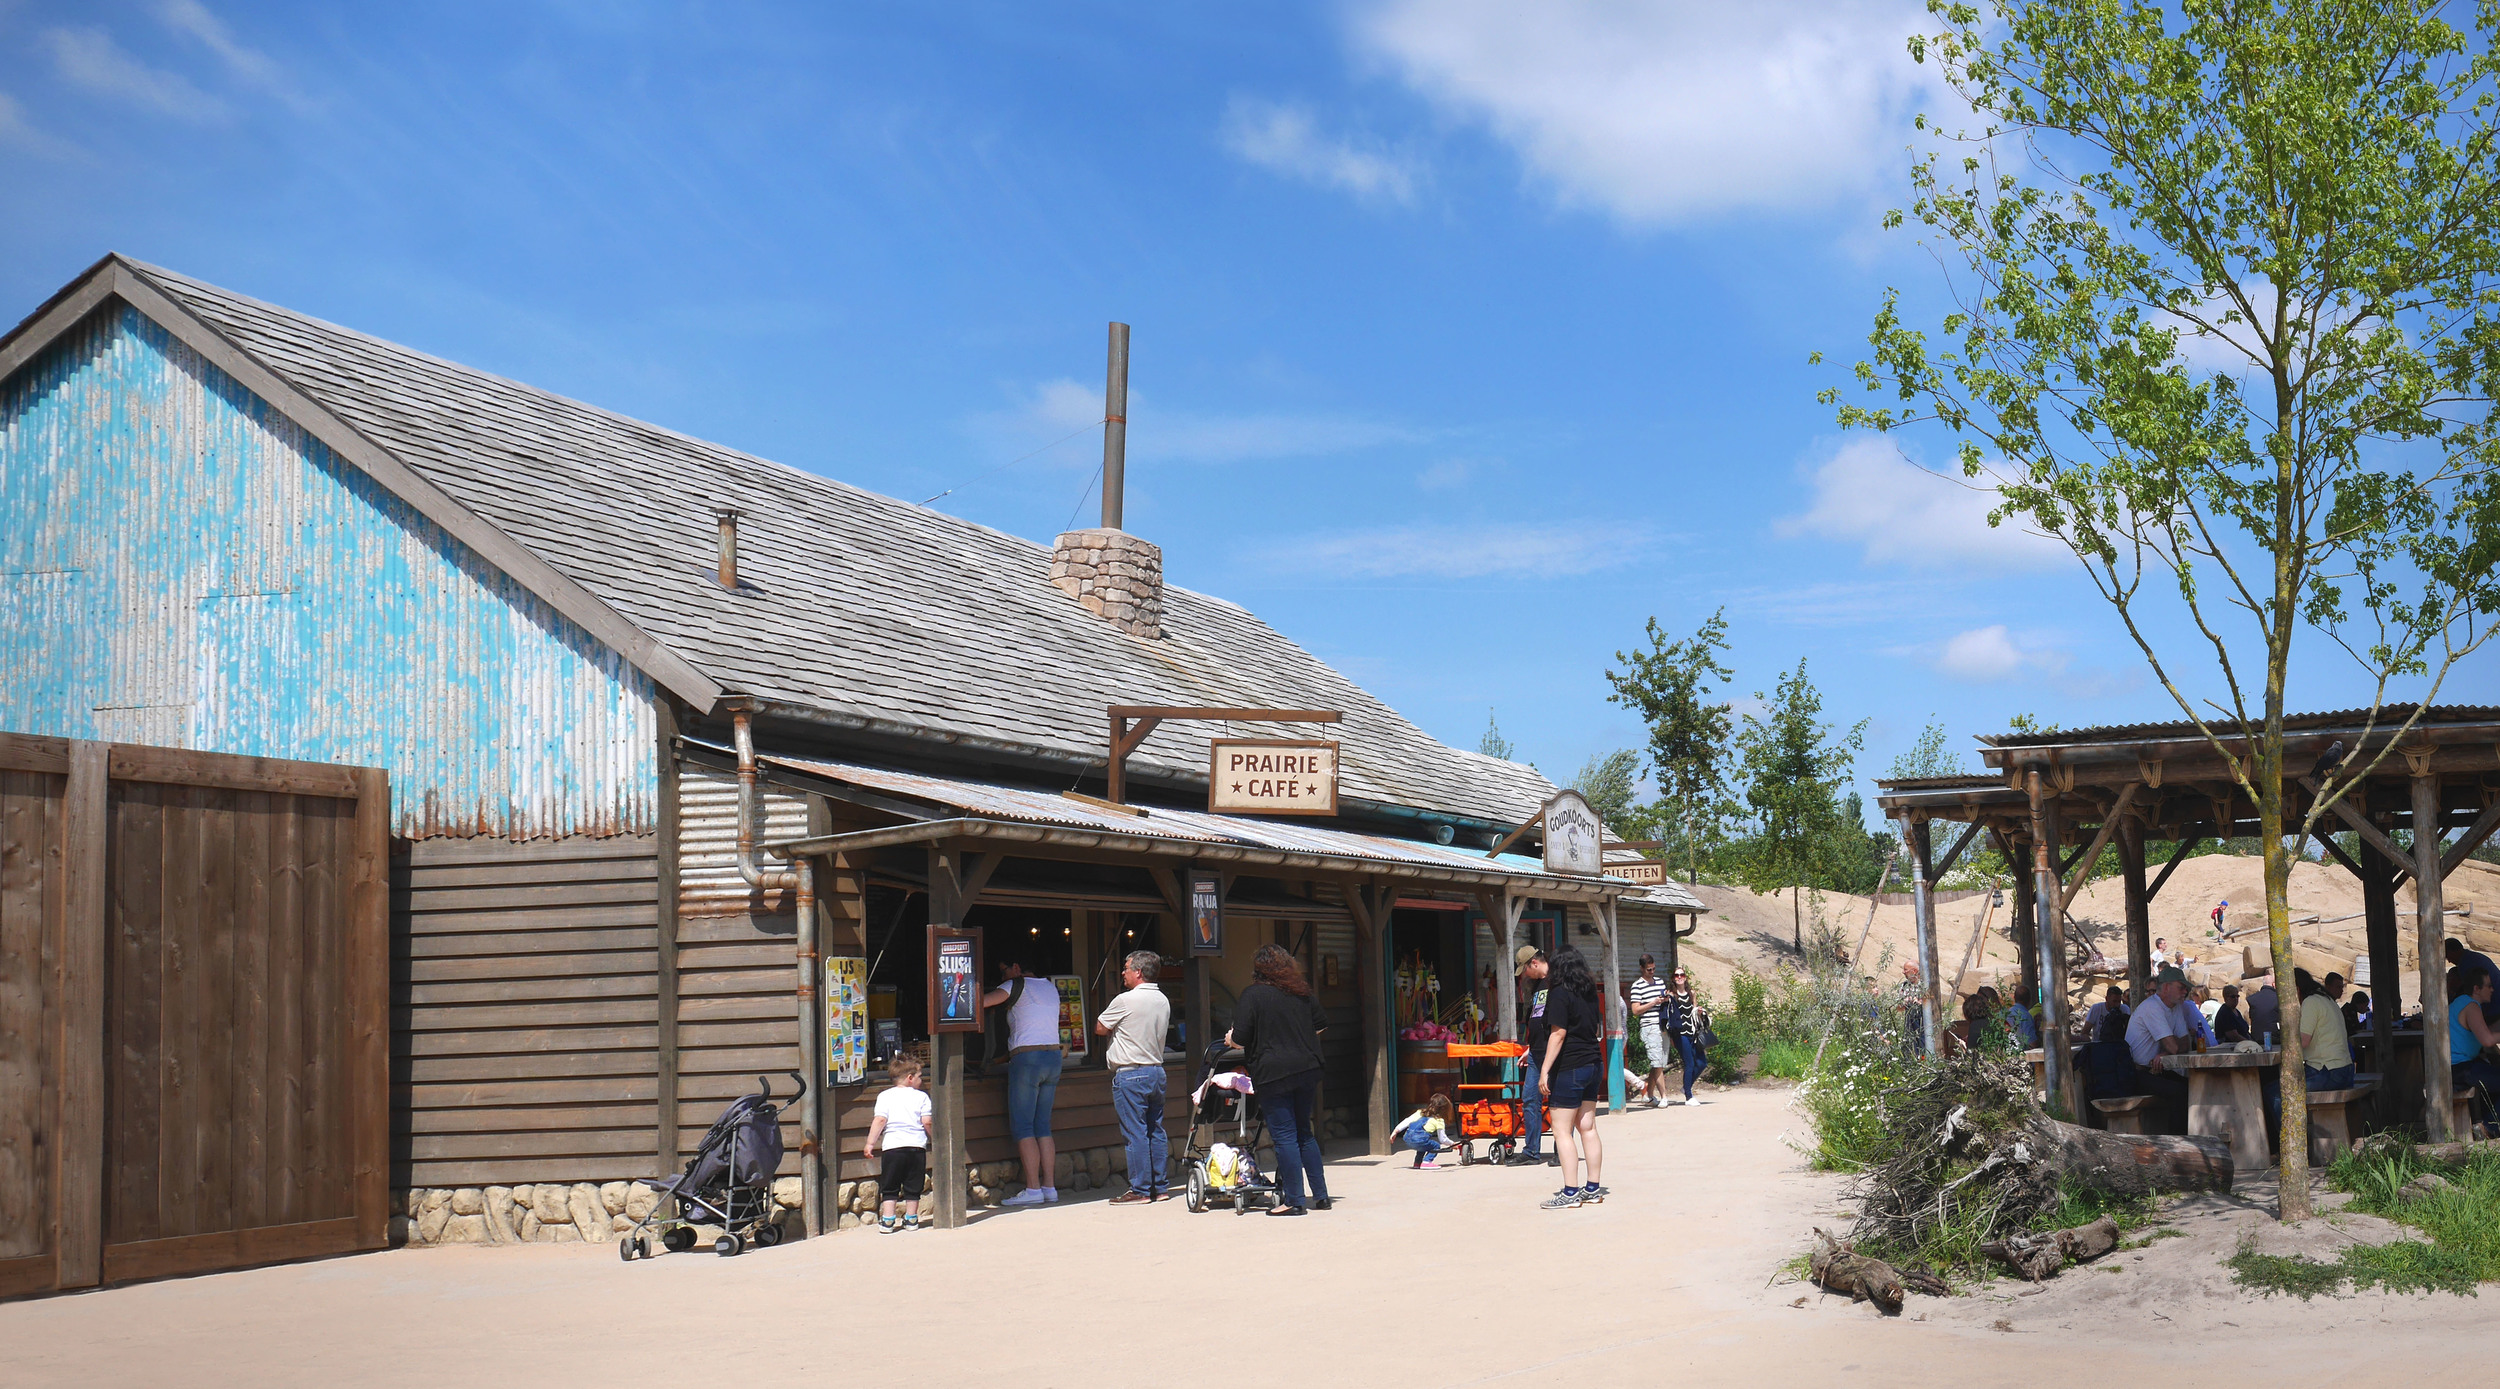 PRARIE CAFE WILDLANDS <strong>  A miner's last chance for a grub stop</strong>